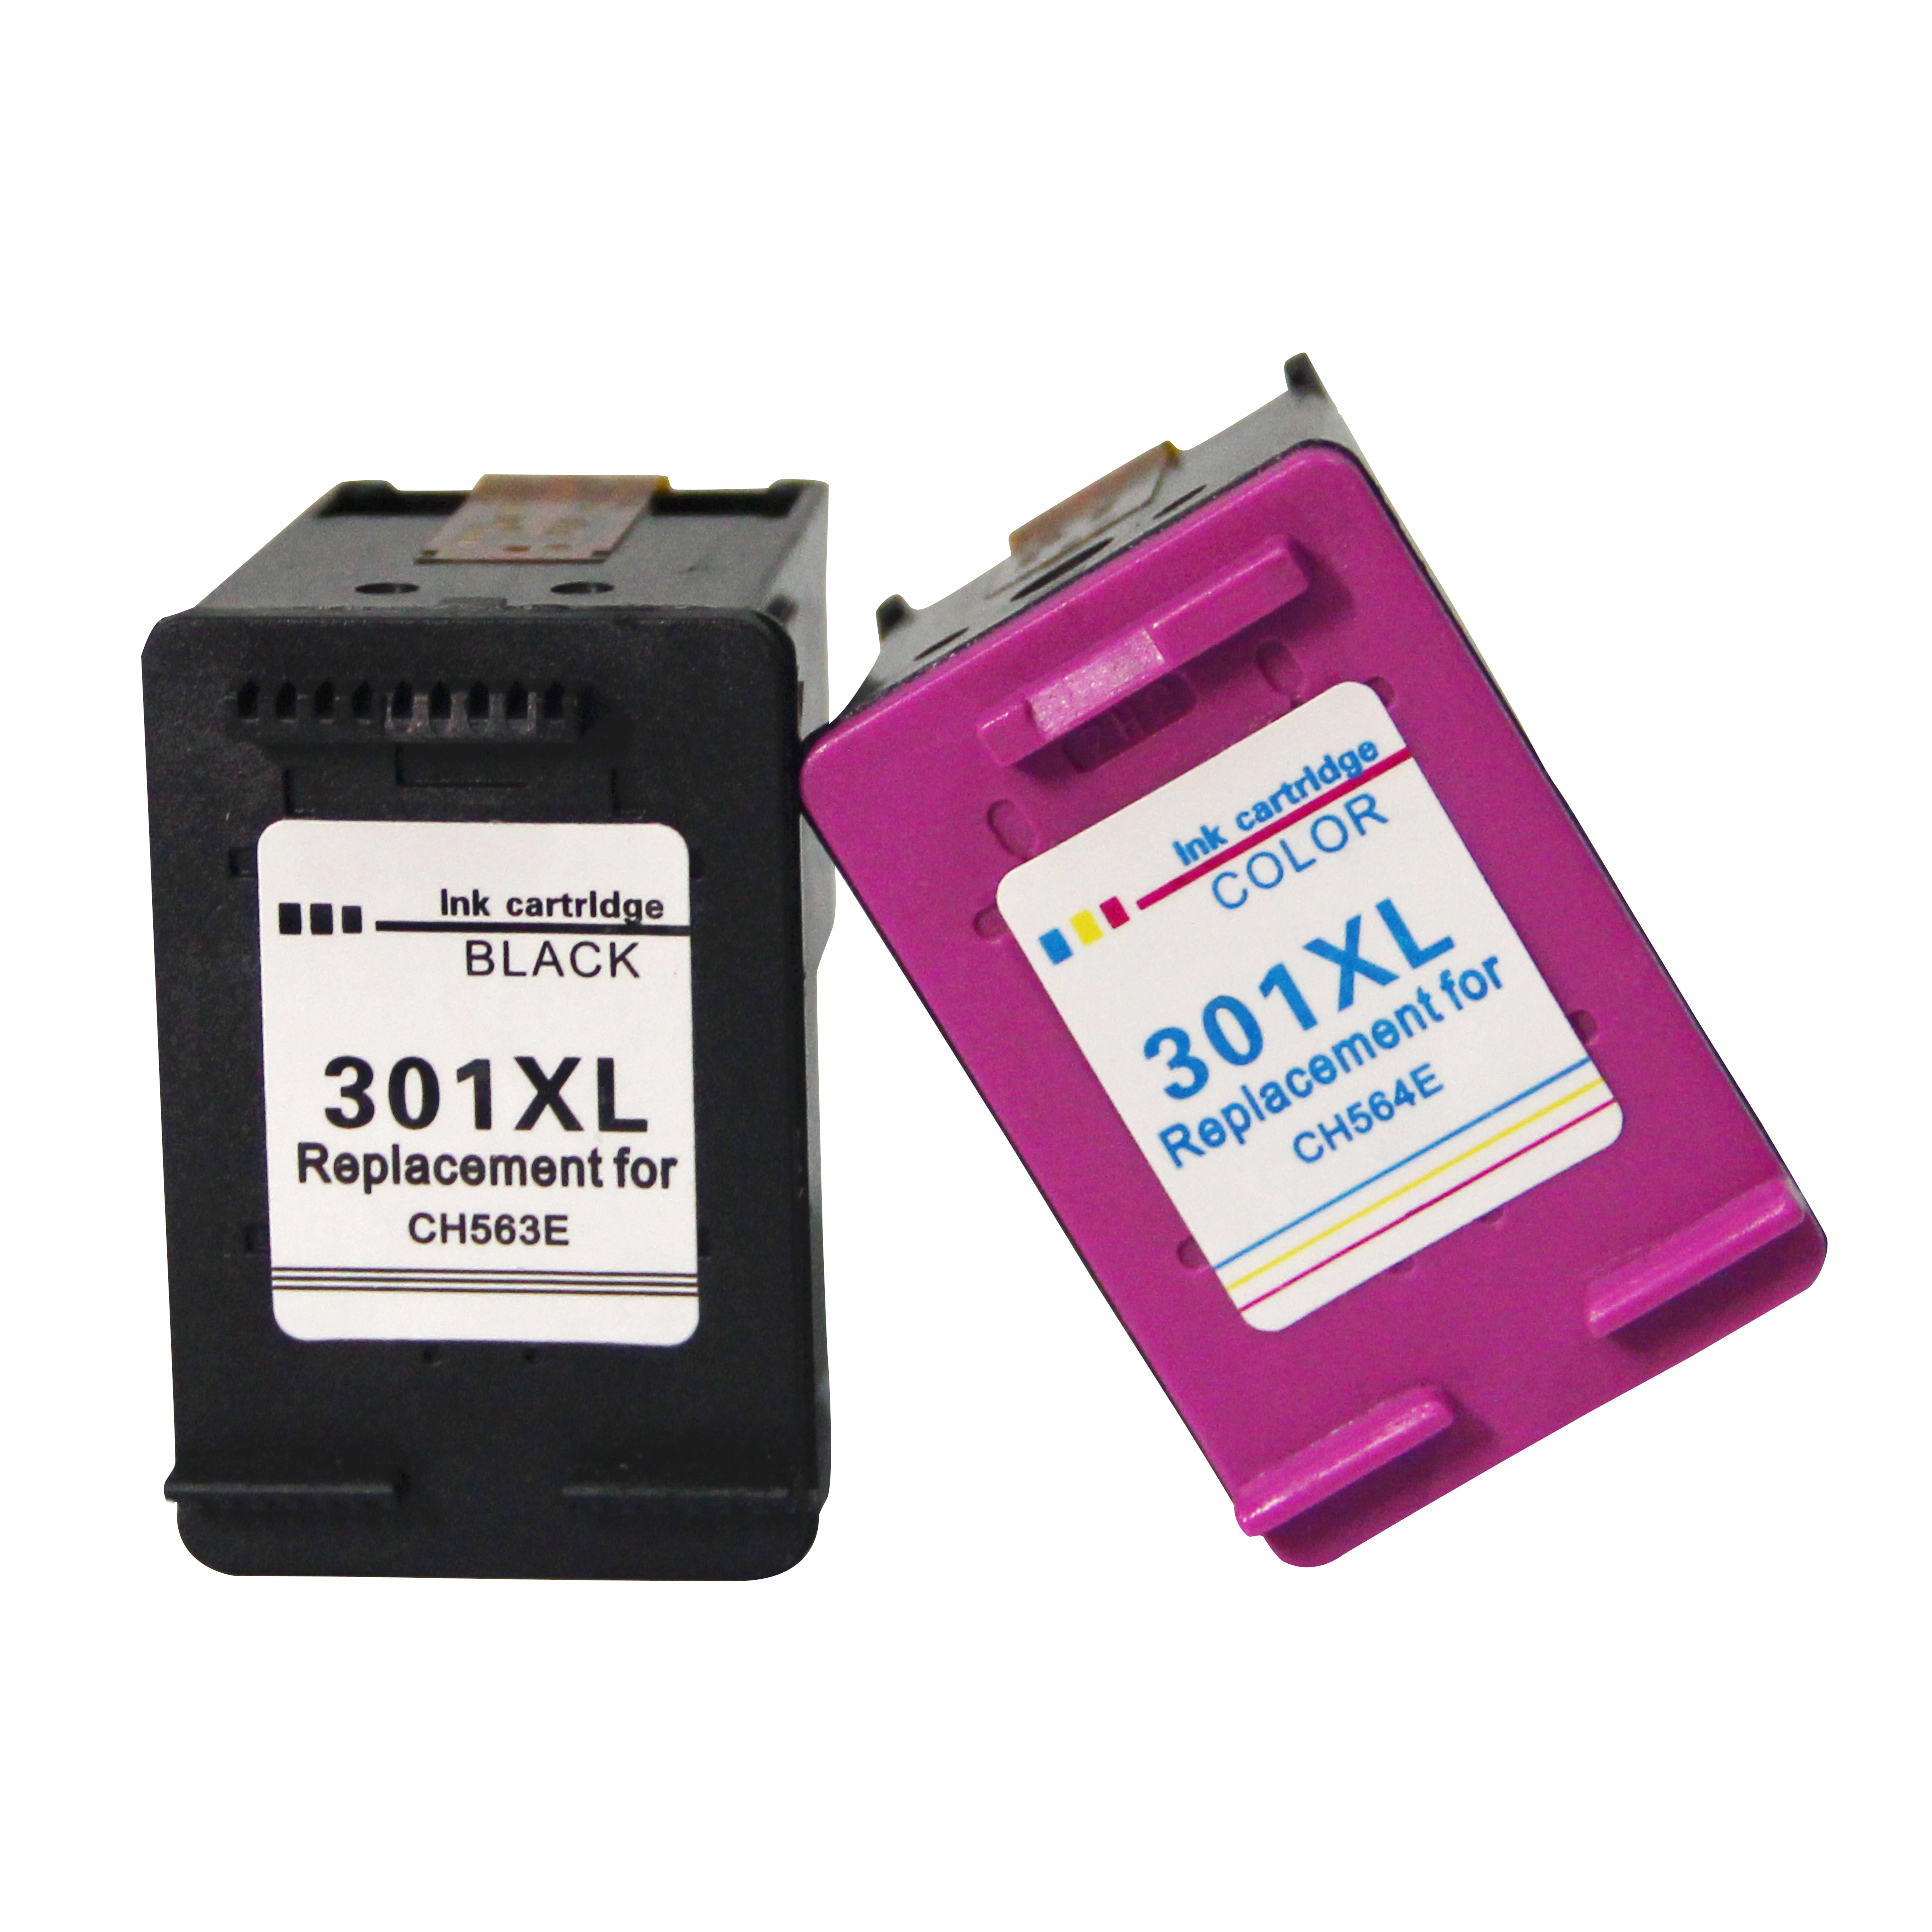 Remanufactured 301XL Ink Cartridges For HP 301 For HP Deskjet 1000 1050 2000 2050 2050S 2510 3510 3050 3050a Printers